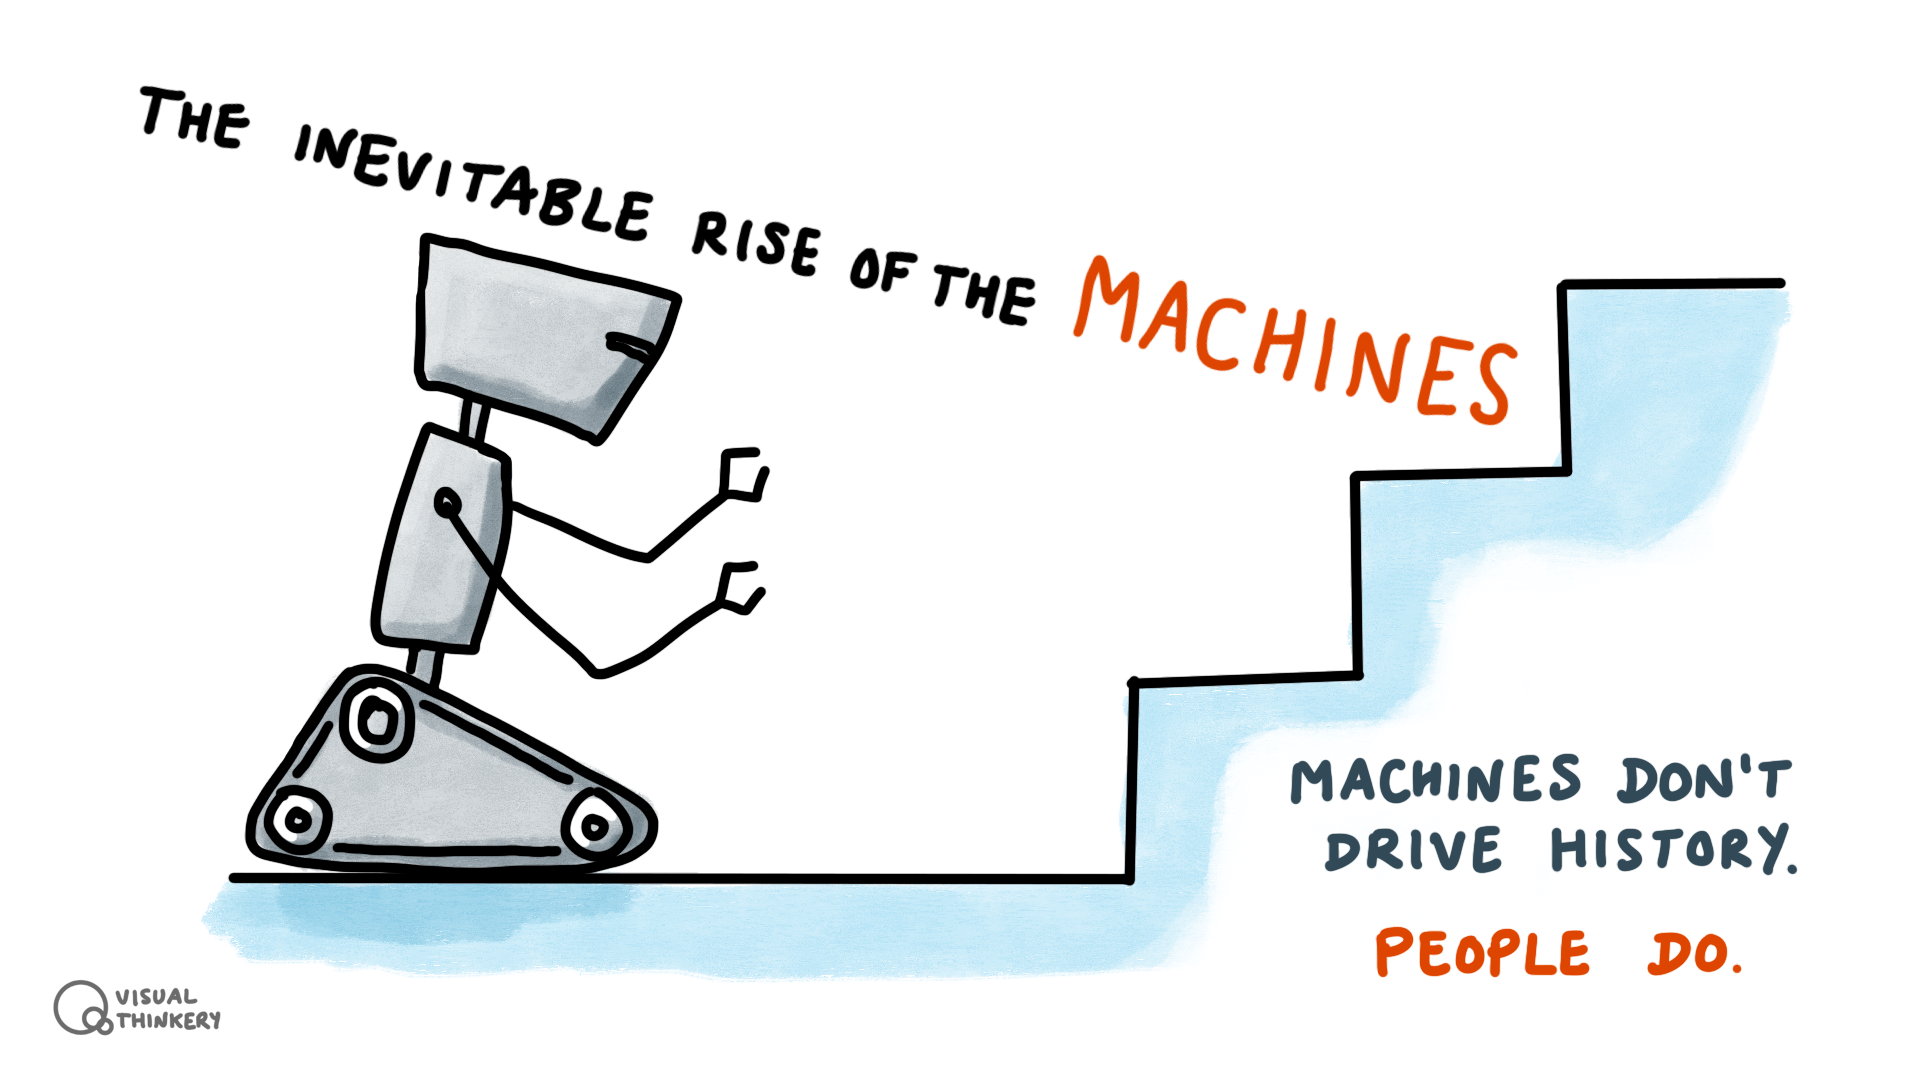 The inevitable rise of the machines